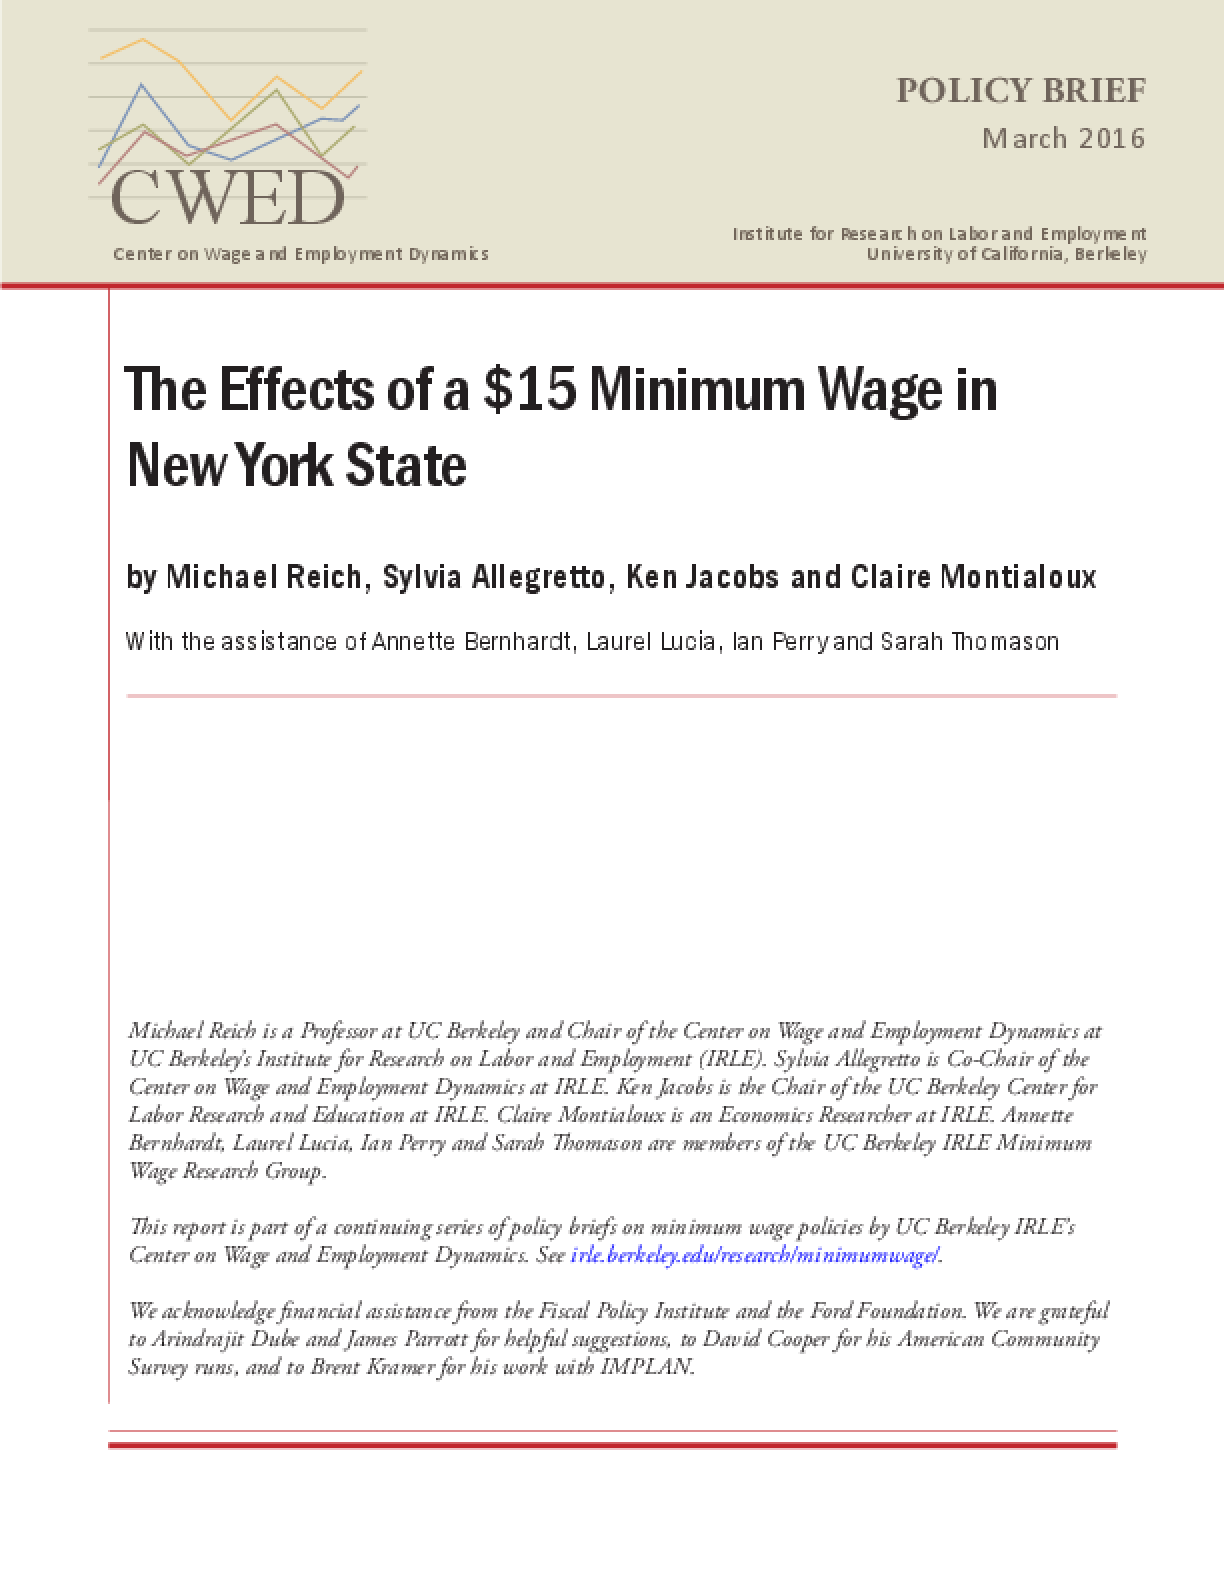 The Effects of a $15 Minimum Wage in New York State